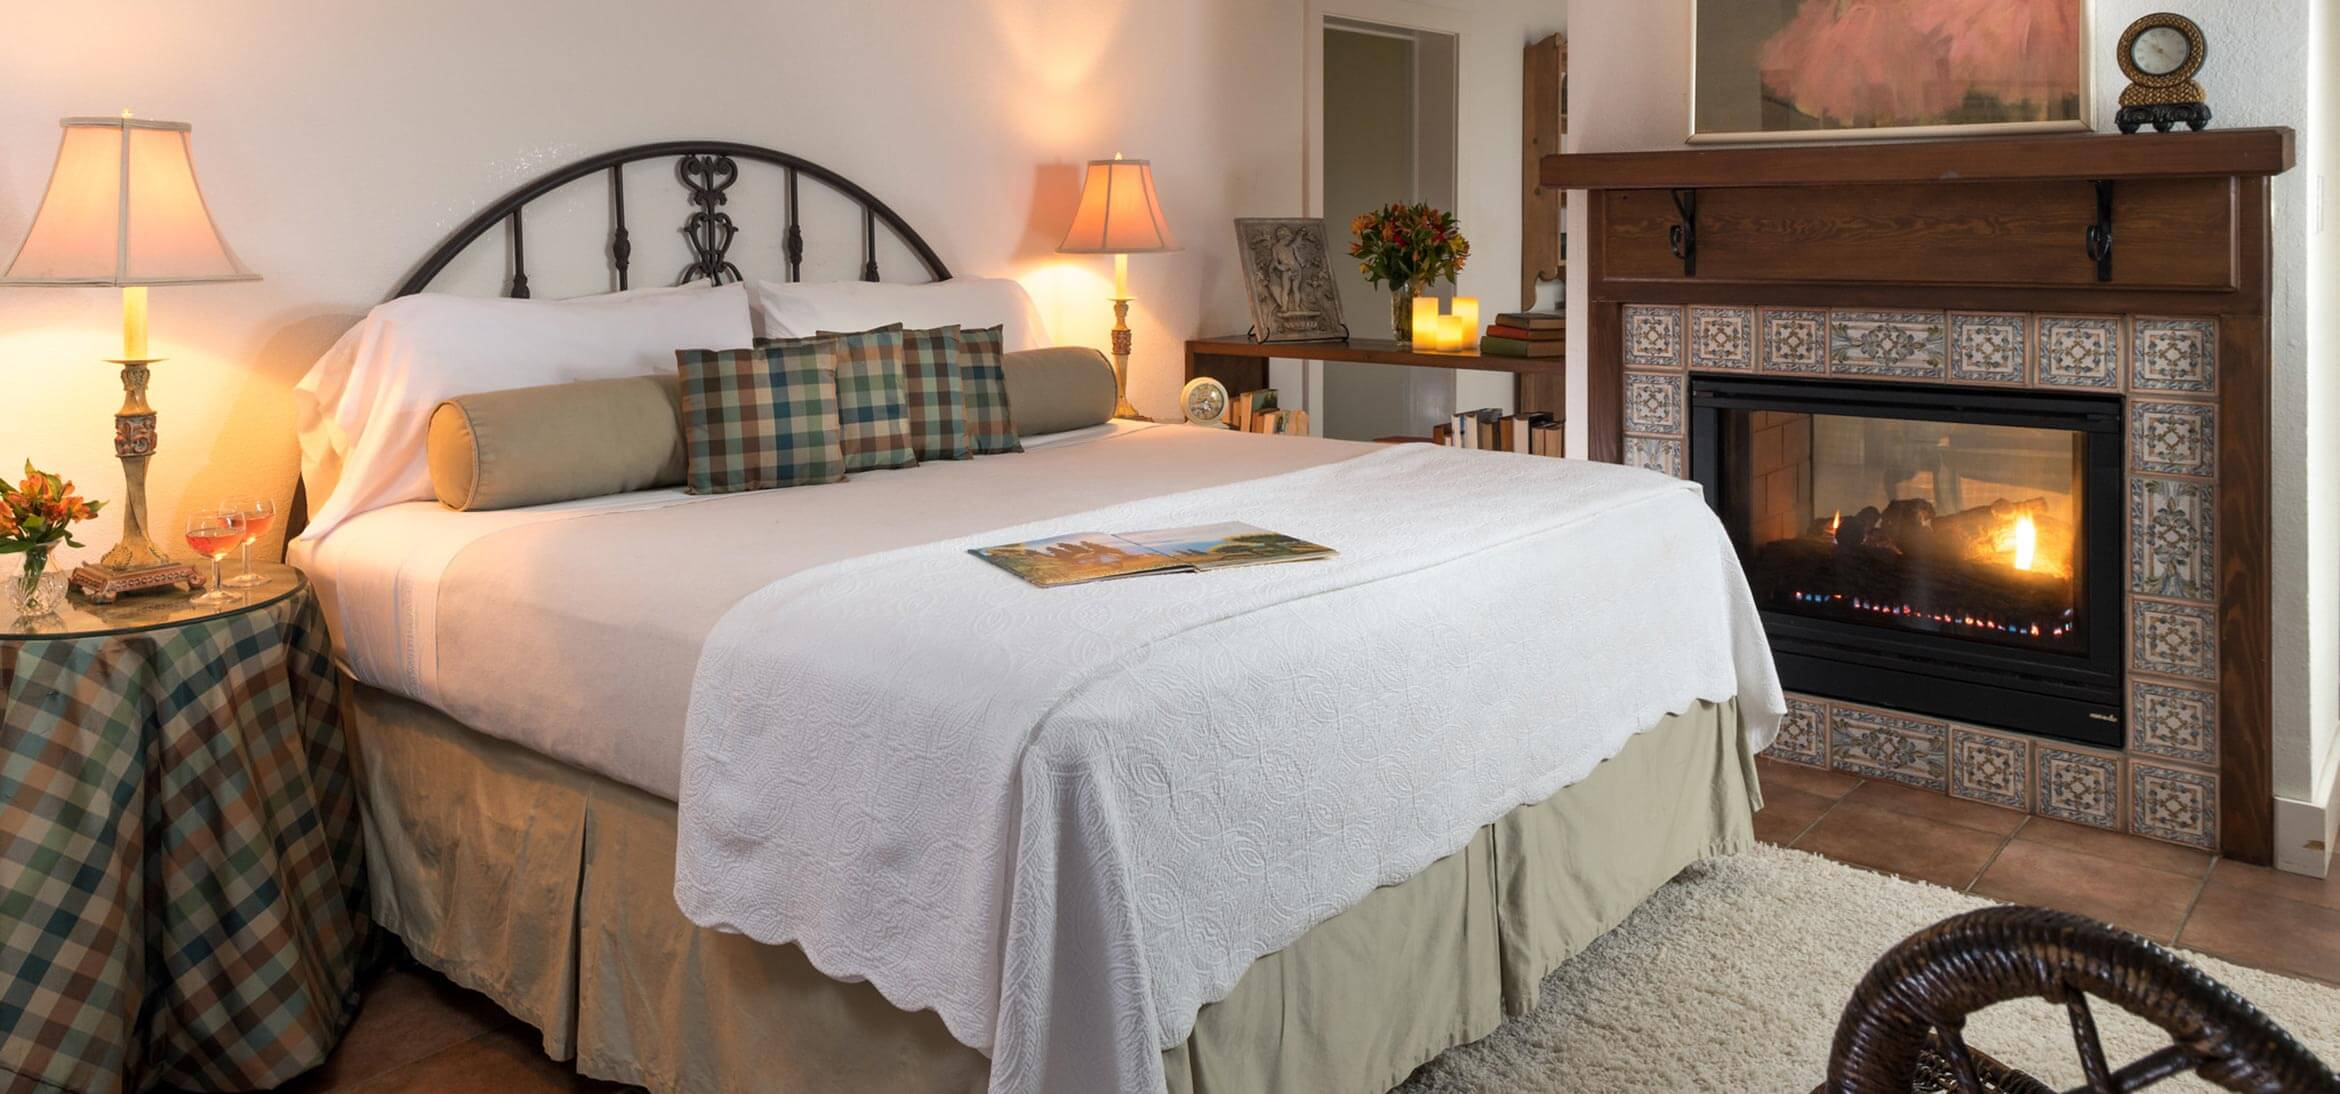 Vineyard Suite bed